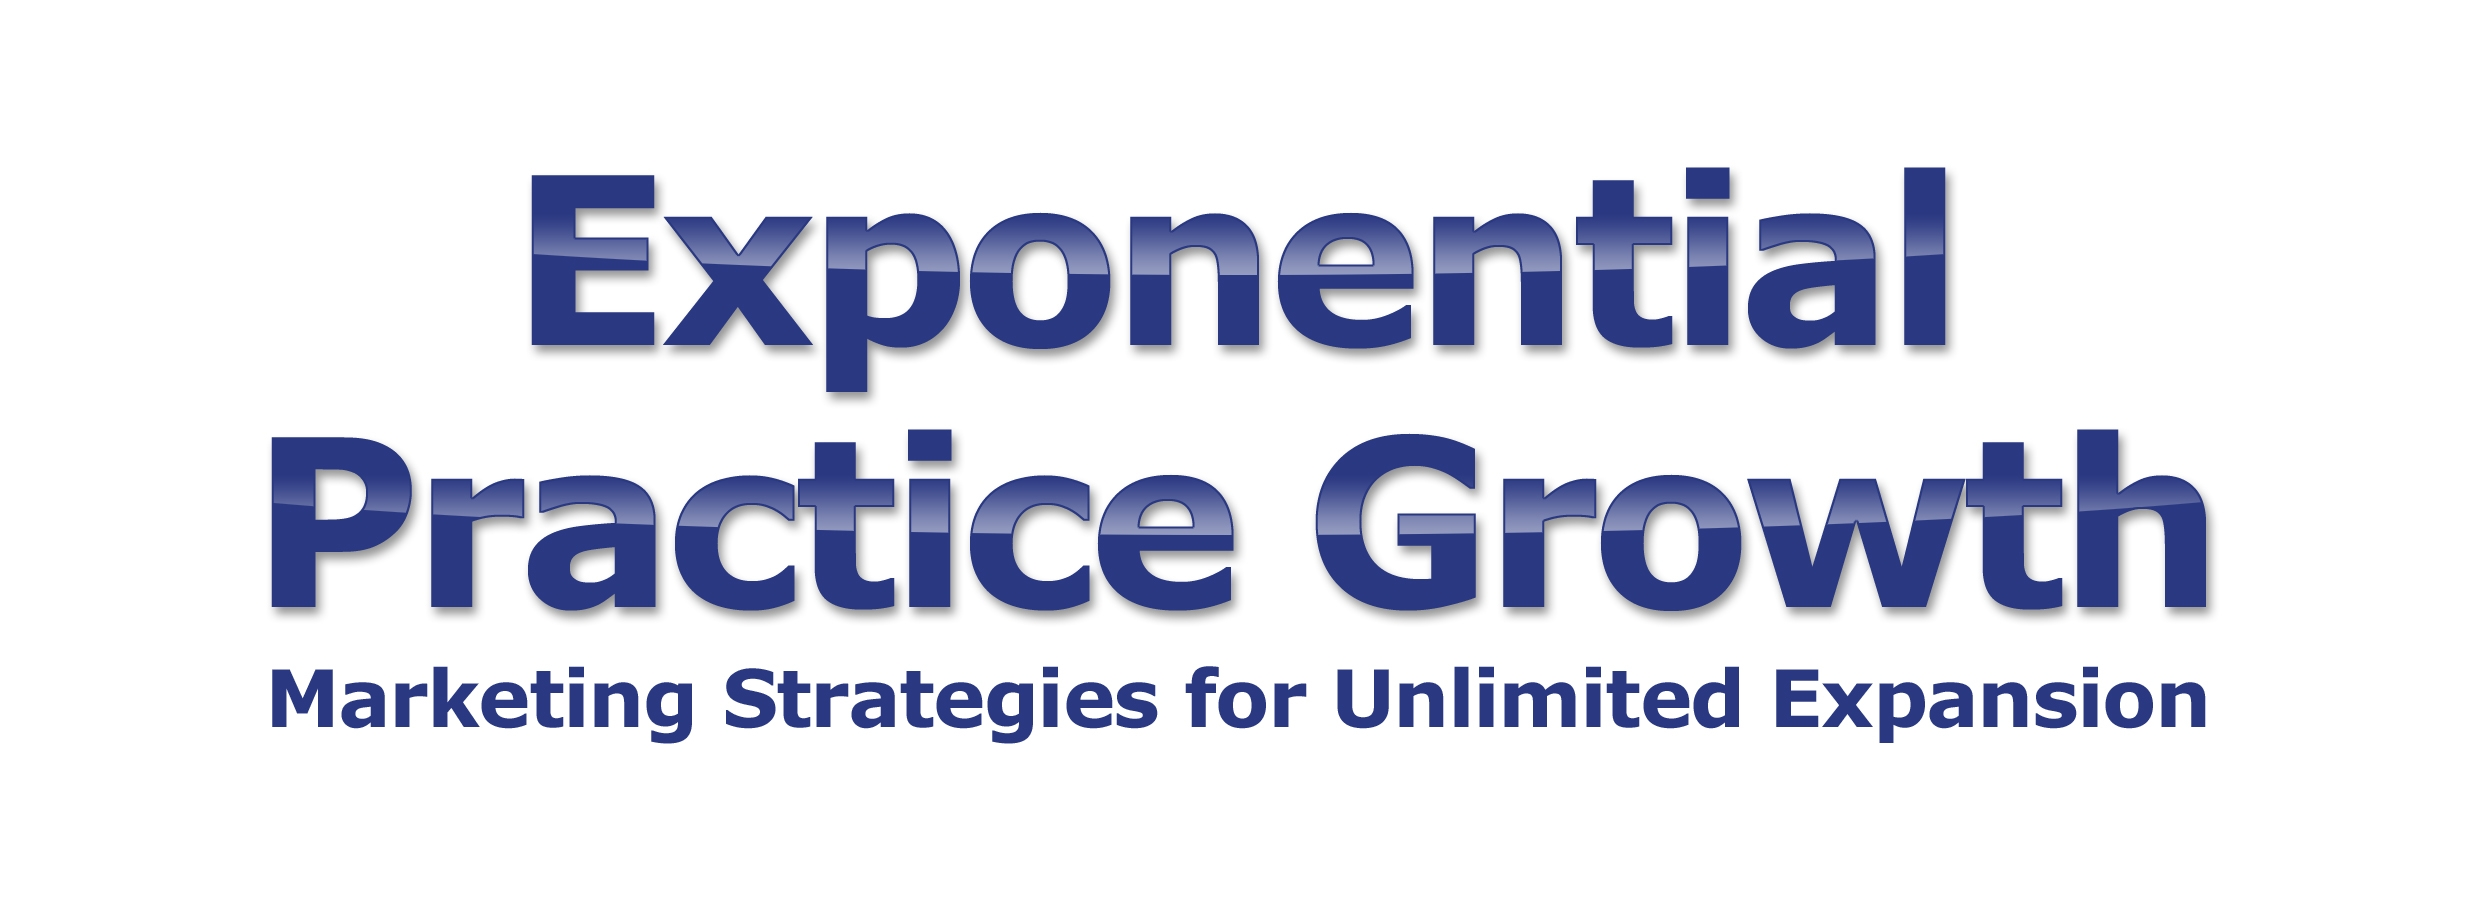 Exponentail Practice Growth - how to grow your practice ethically and easily!